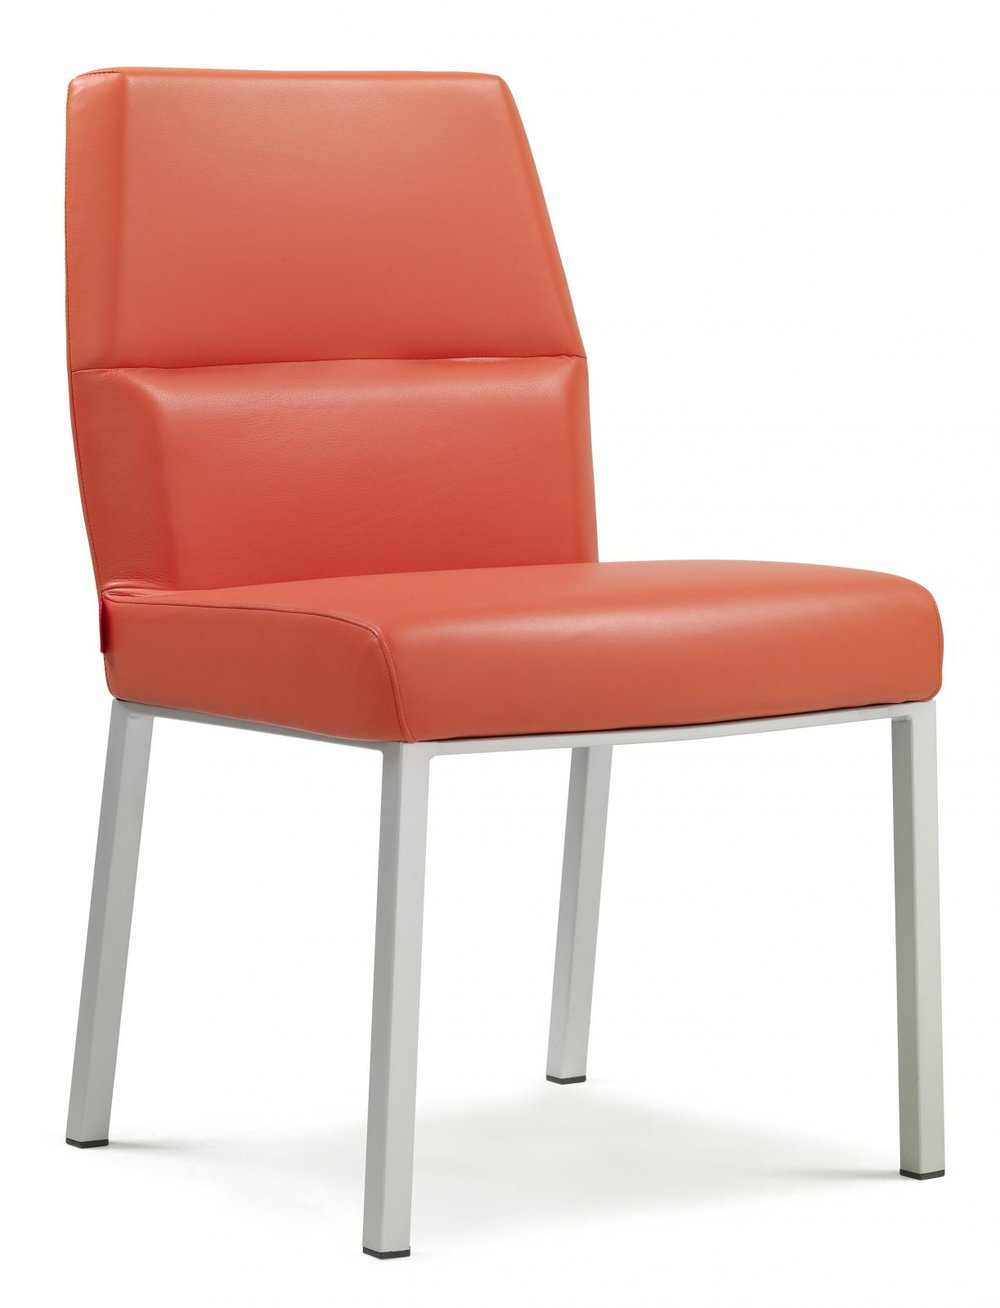 modern-office-furniture-chairs-Italian-designer-furniture (40).jpg